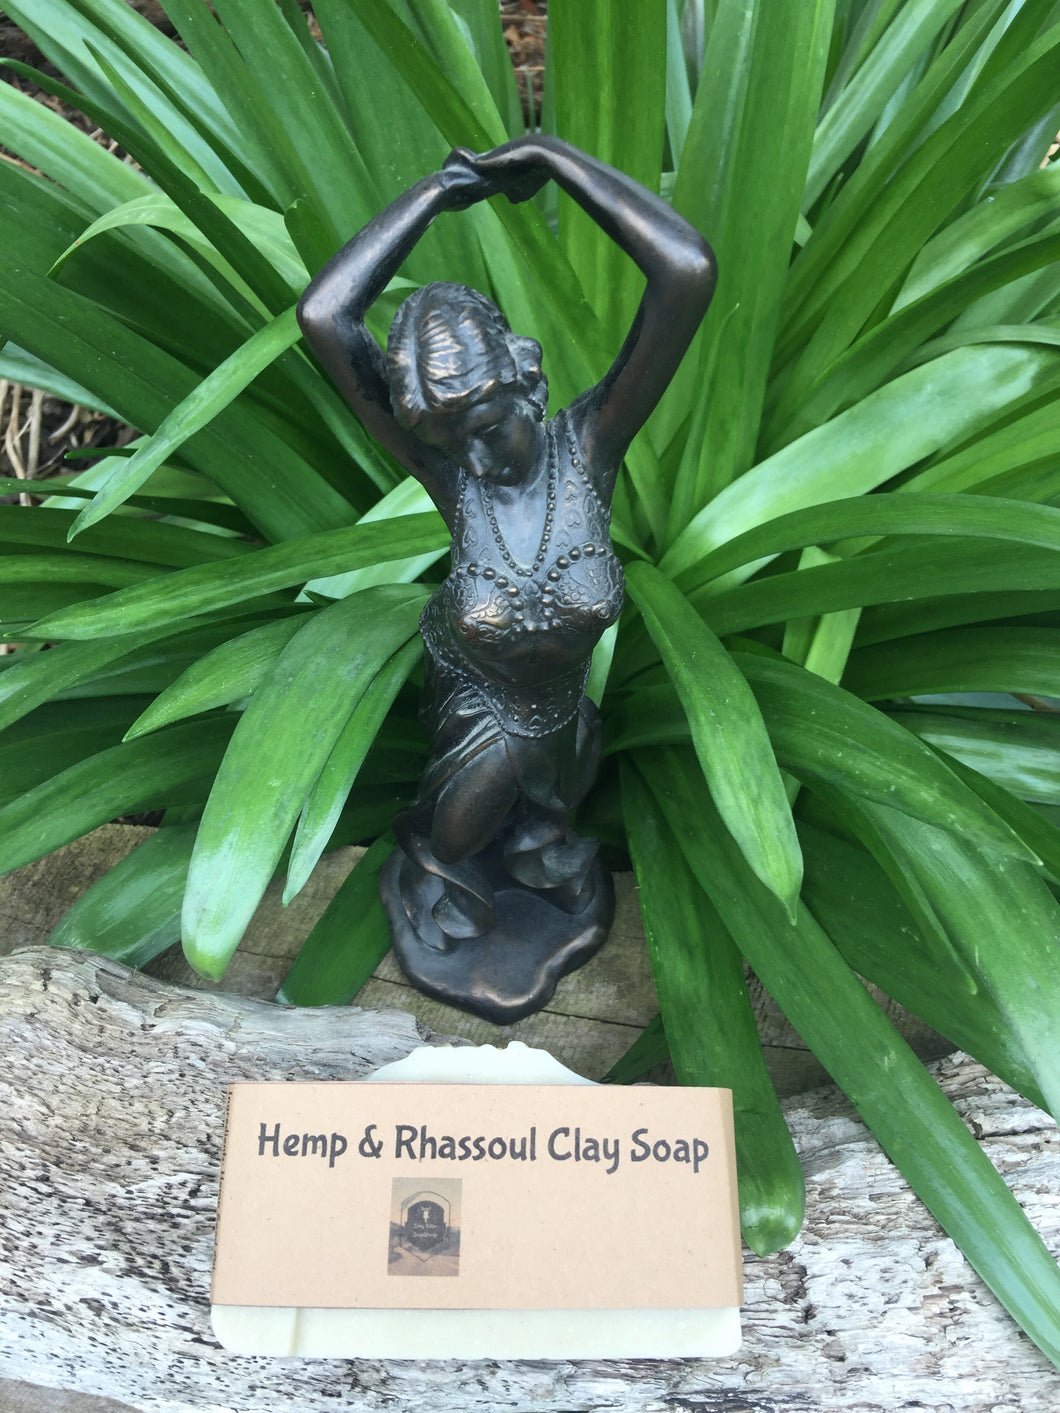 Hemp and Rhassoul Clay Soap